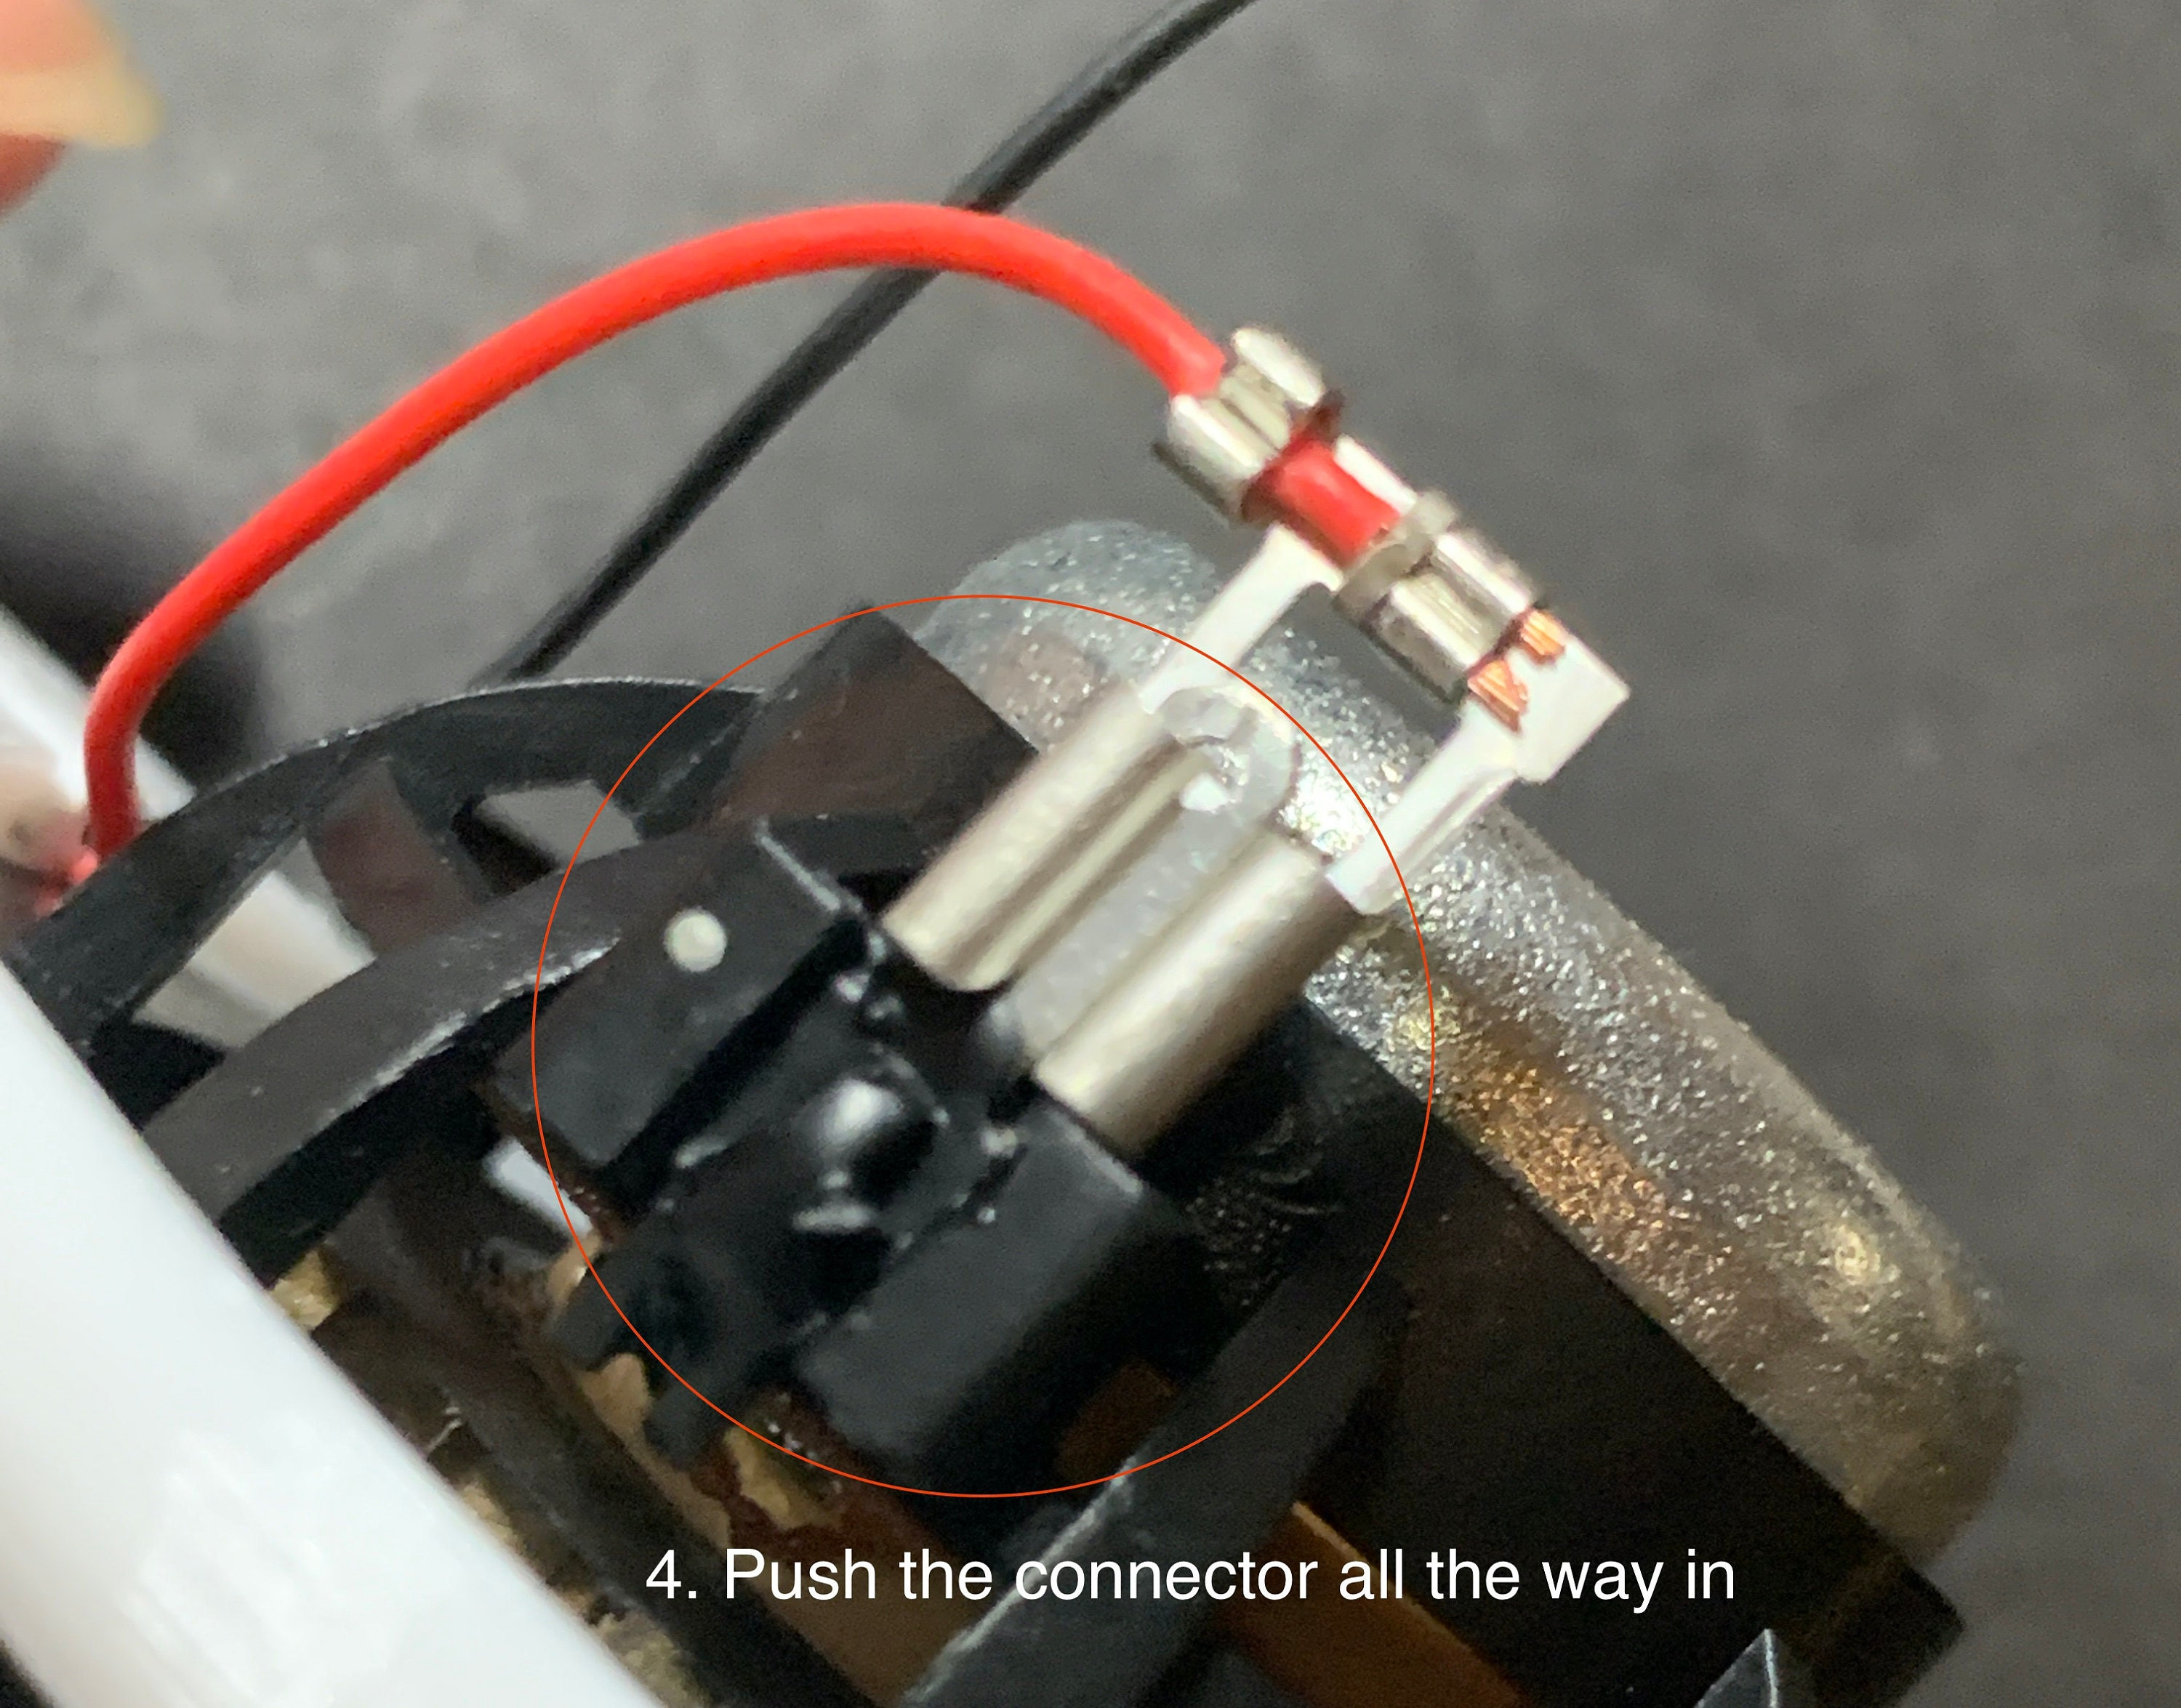 4. Push the connector all the way in.